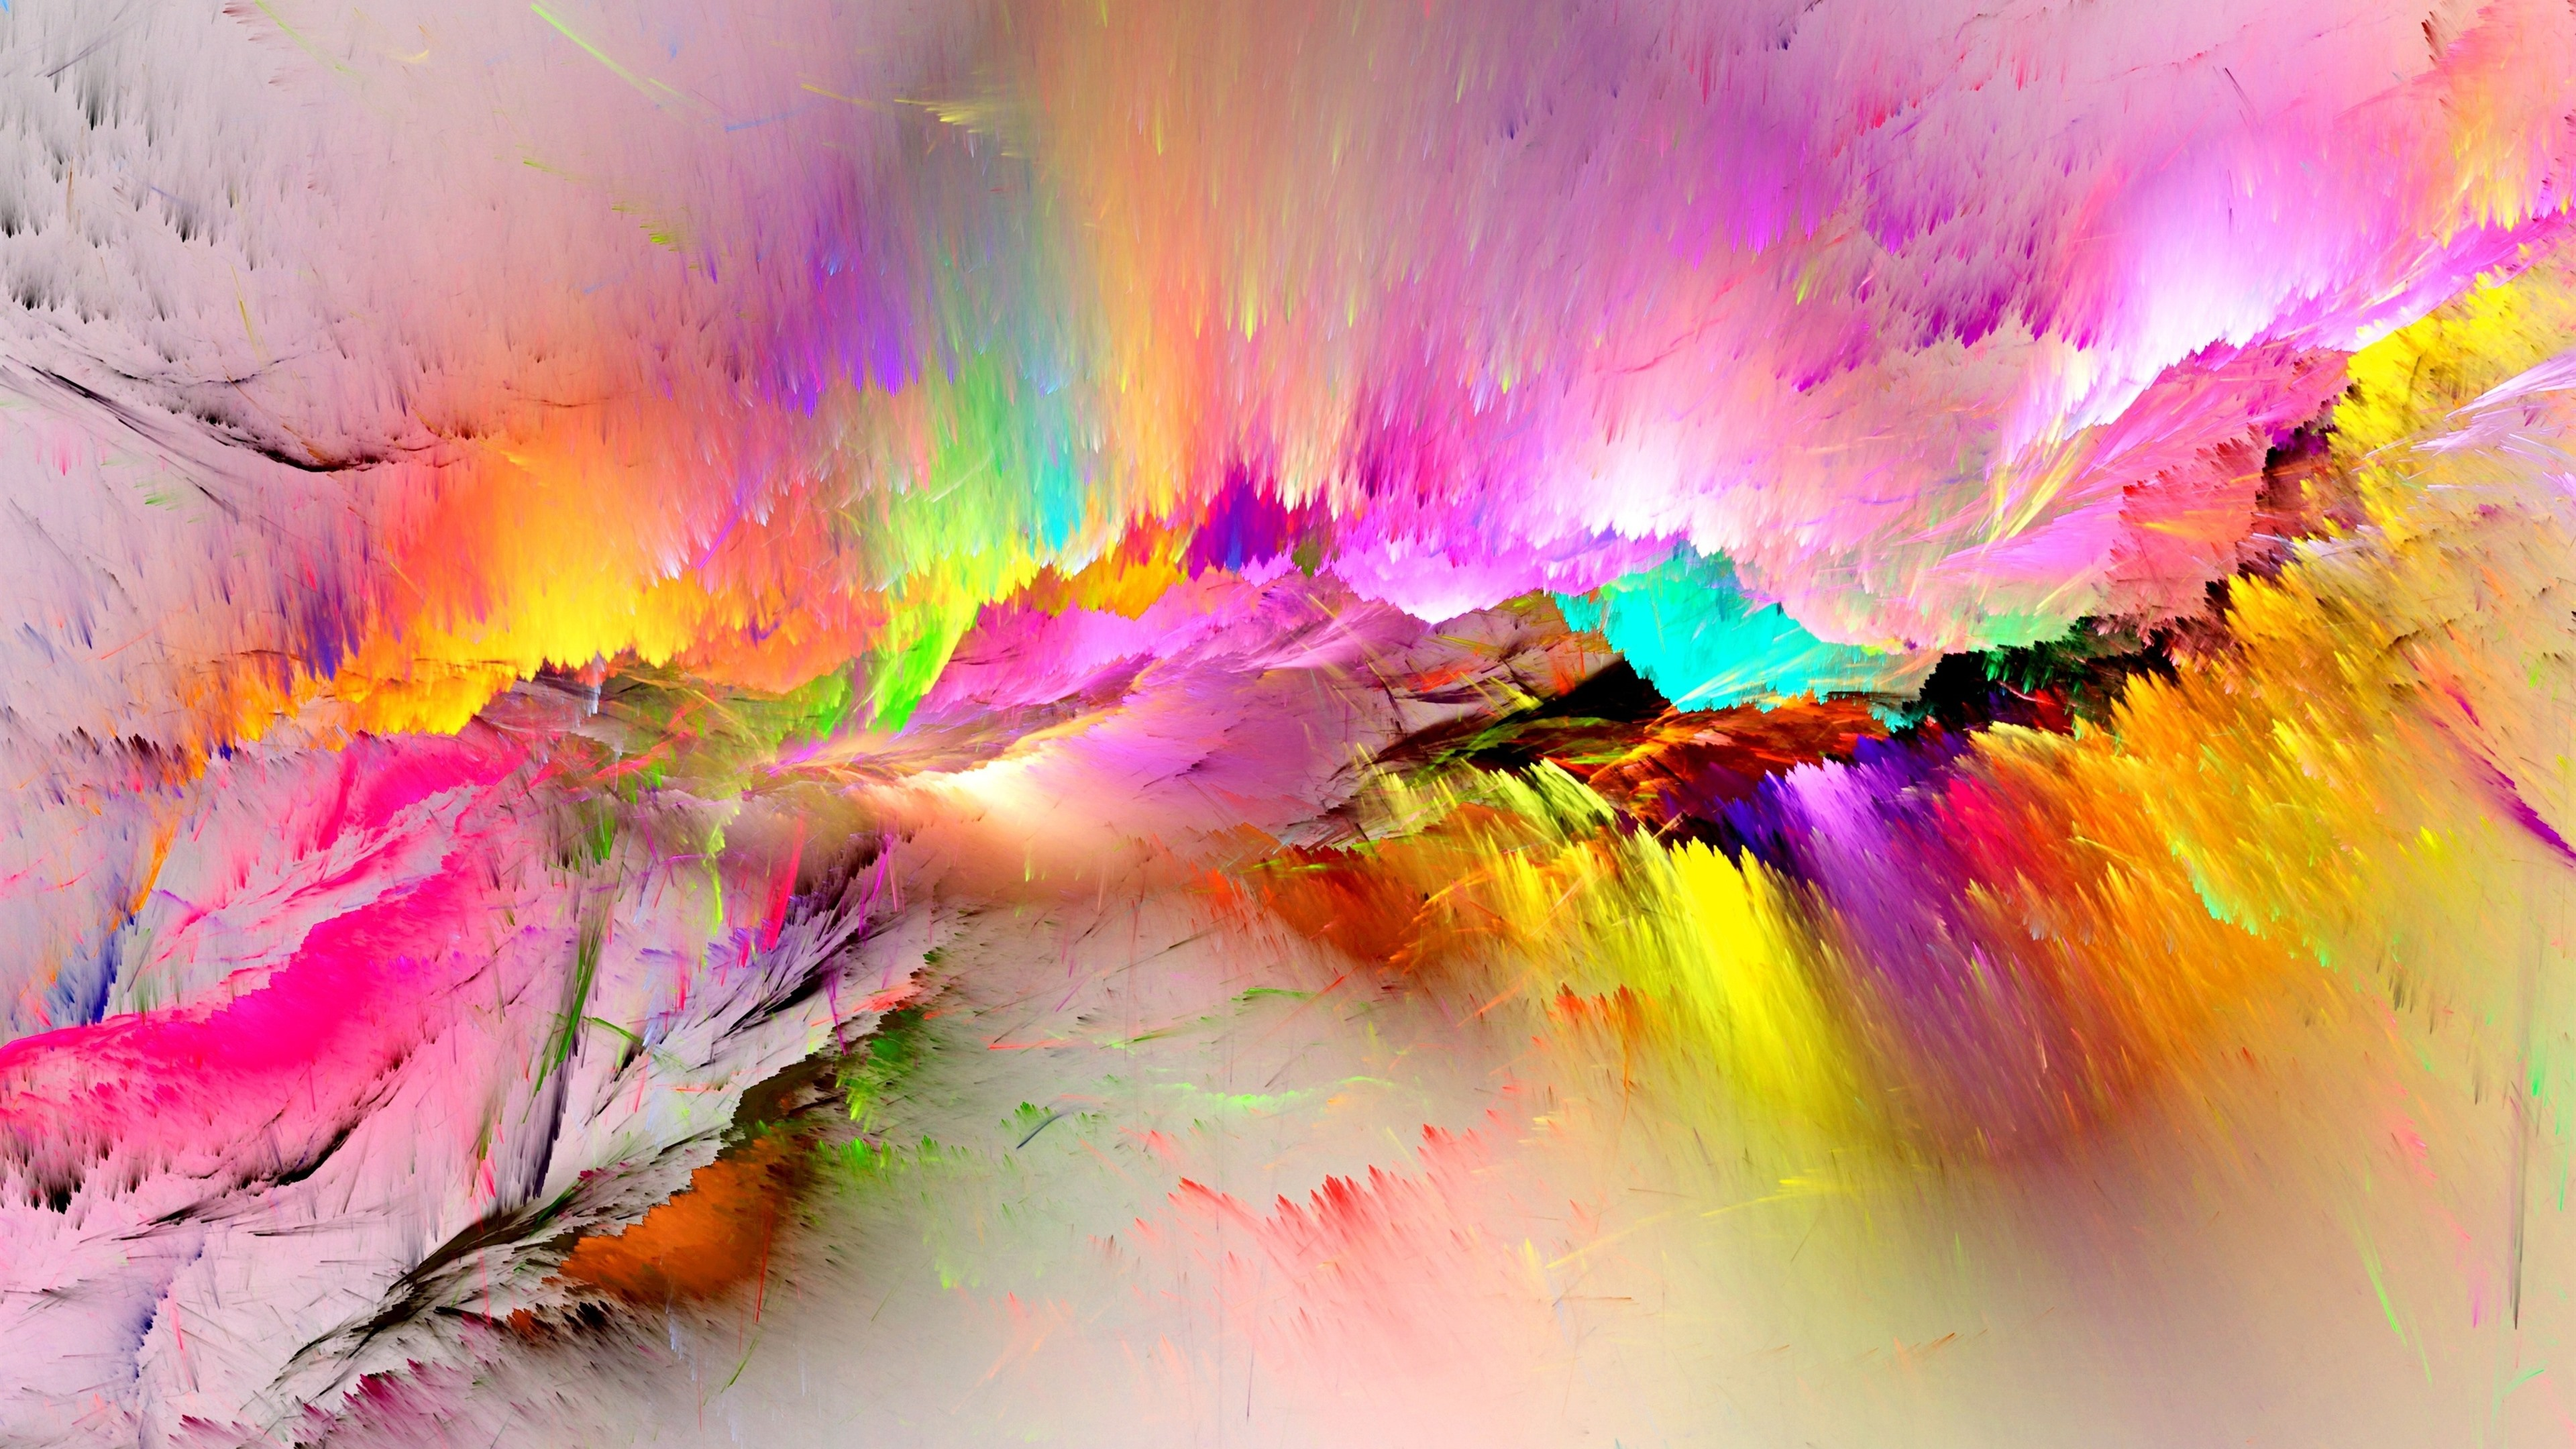 Paint Rainbow Girl Wallpapers: Fondos De Pantalla Pintura Colorida, Arco Iris, Abstracto